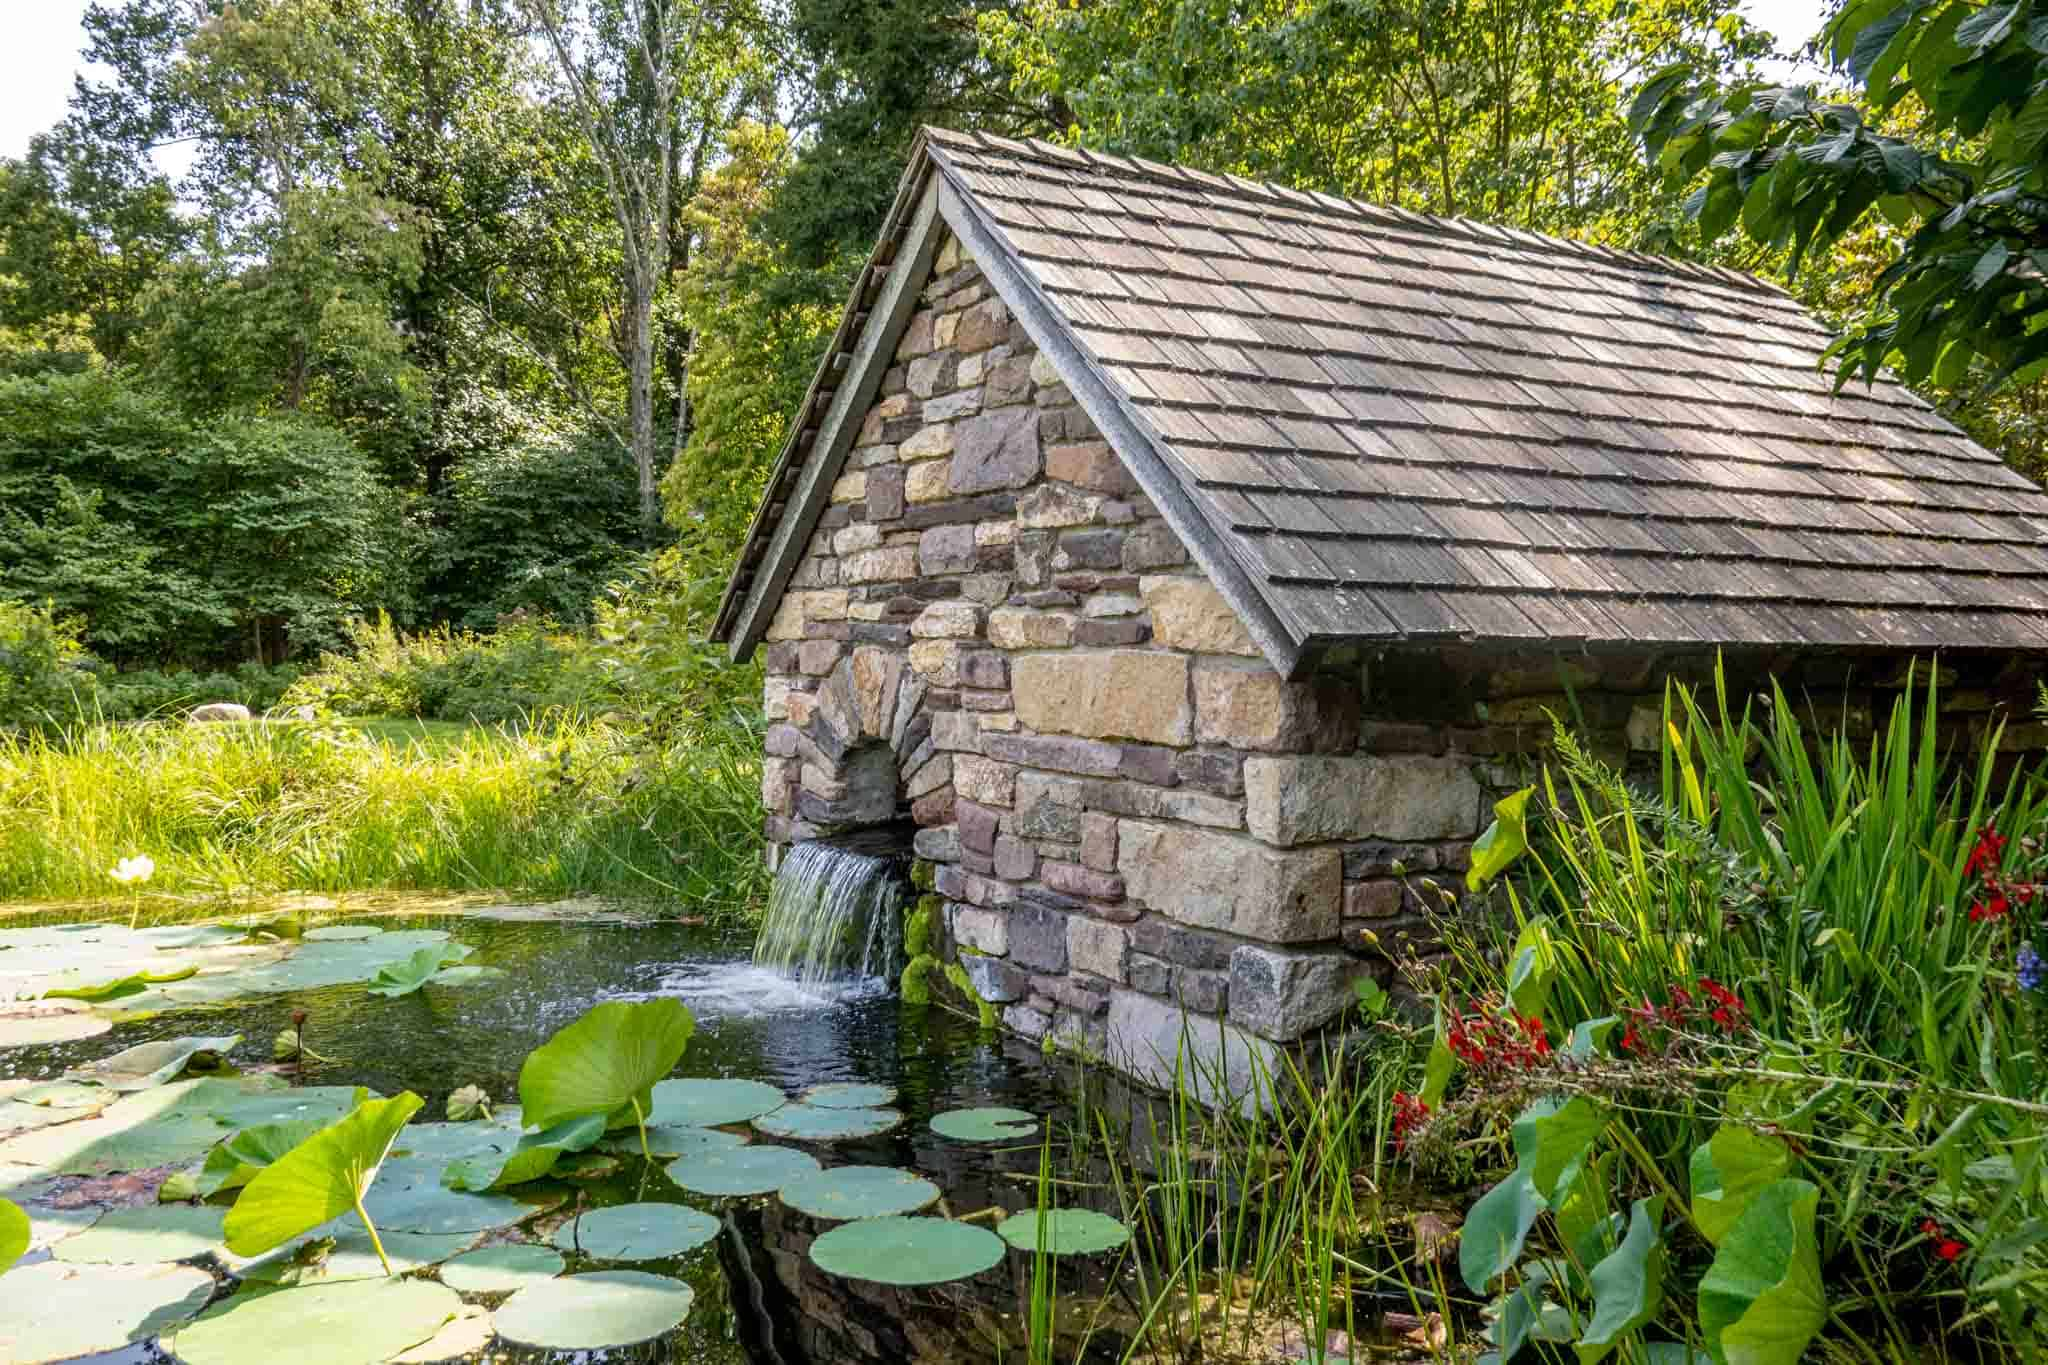 Stone building at pond